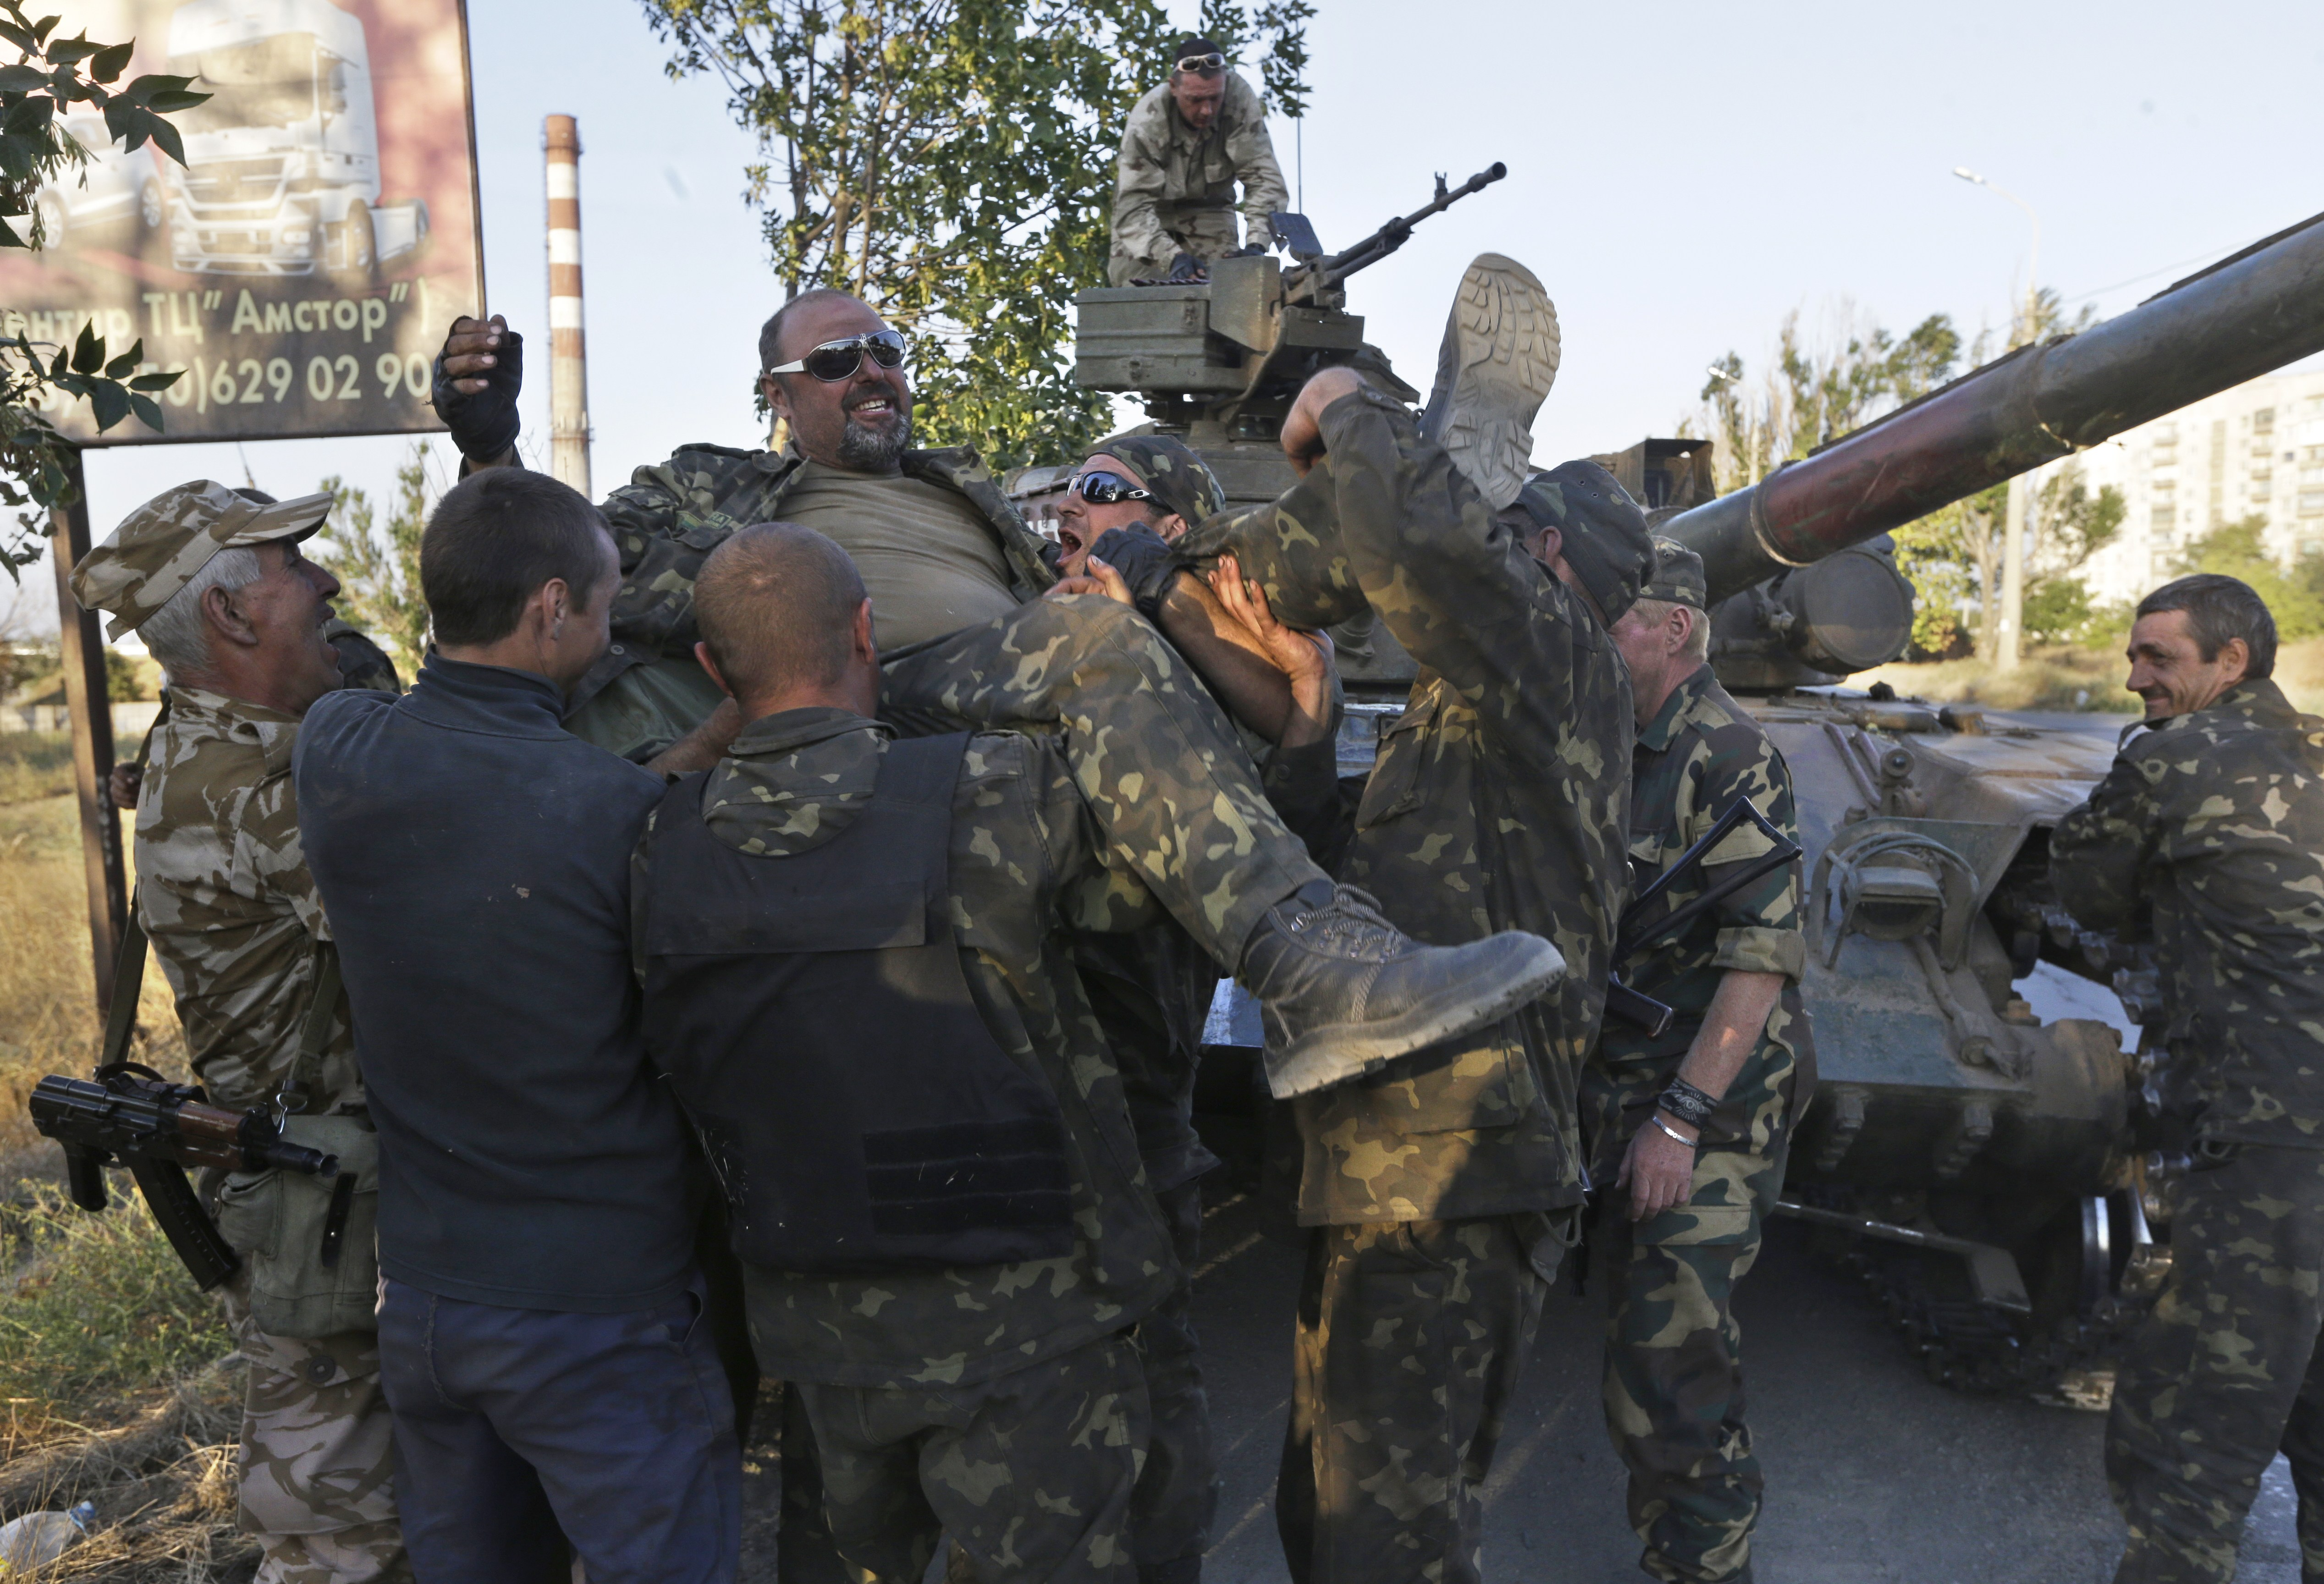 Ukrainian army soldiers congratulate their comrade who returned alive from the battlefield in the port city of Mariupol, southeastern Ukraine, Friday, Sept. 5, 2014, shortly after the announcement of a ceasefire between the government and Russian-backed separatist rebels.